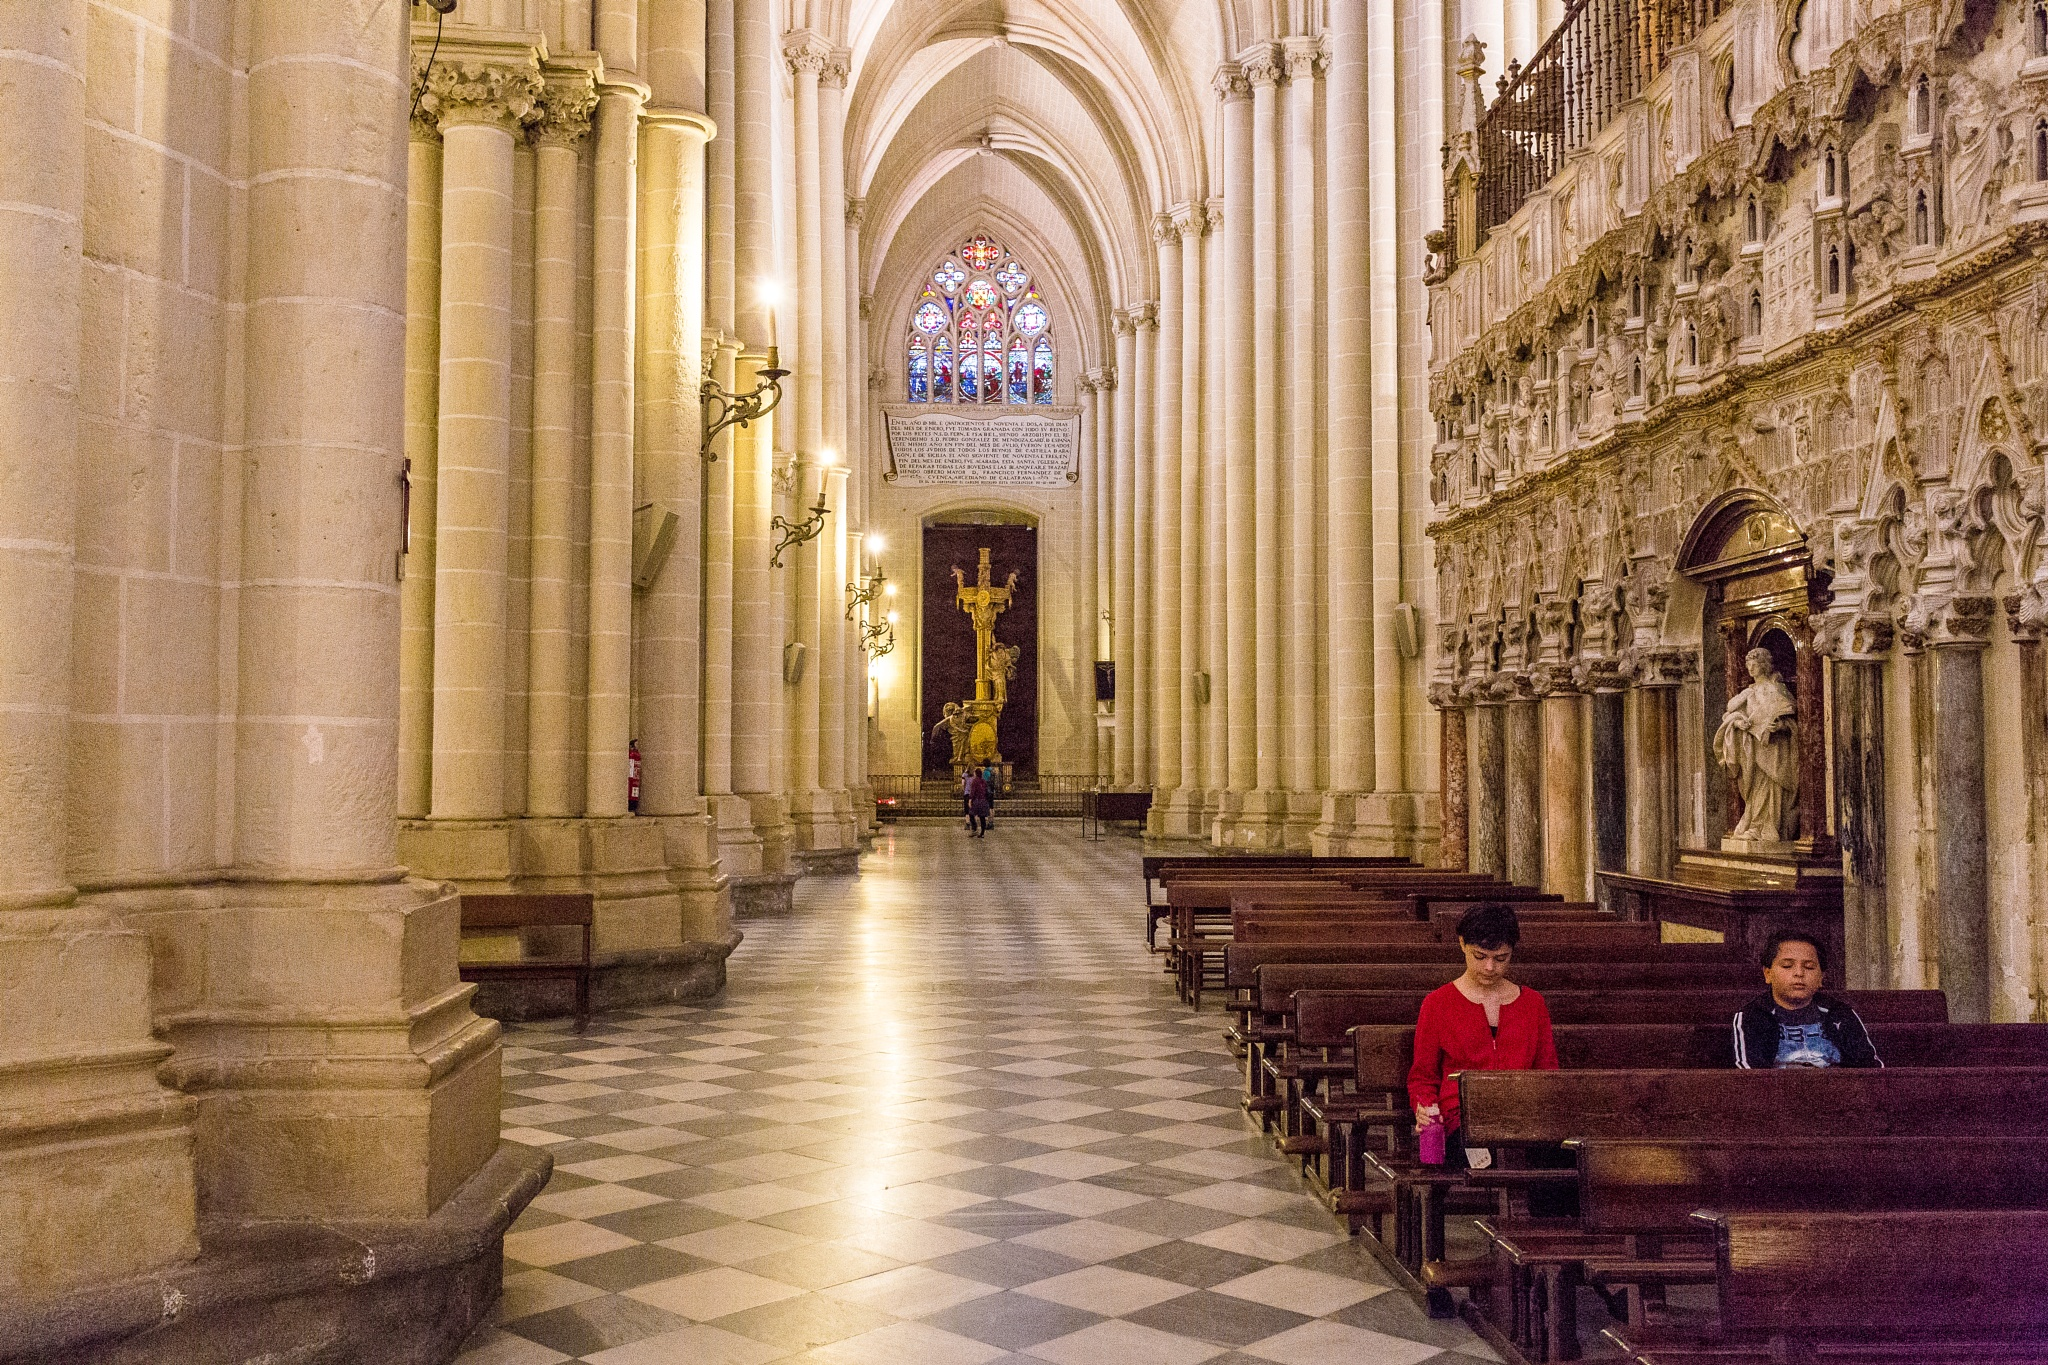 Cathedral, Toledo by PedroPauloRipper